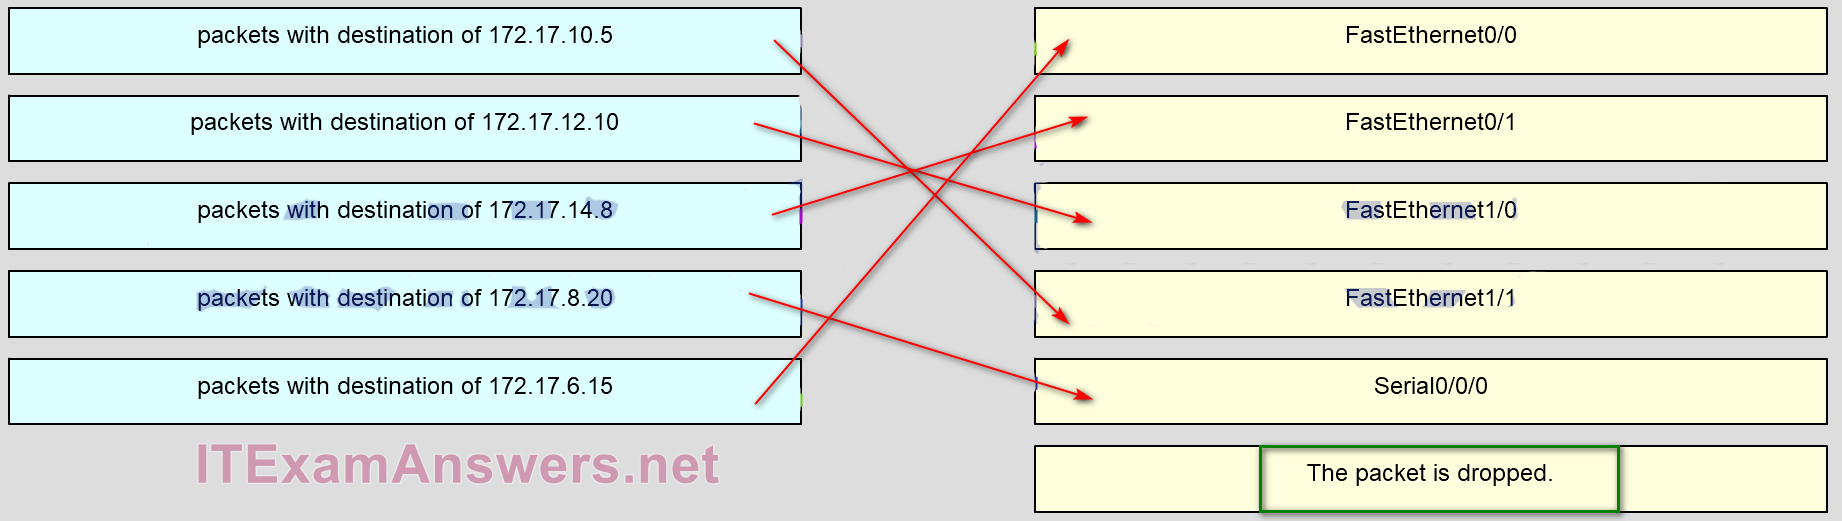 CCNA 4 Connecting Networks v6.0 - CCNA (ICND2) Cert Practice Exam Answers 3